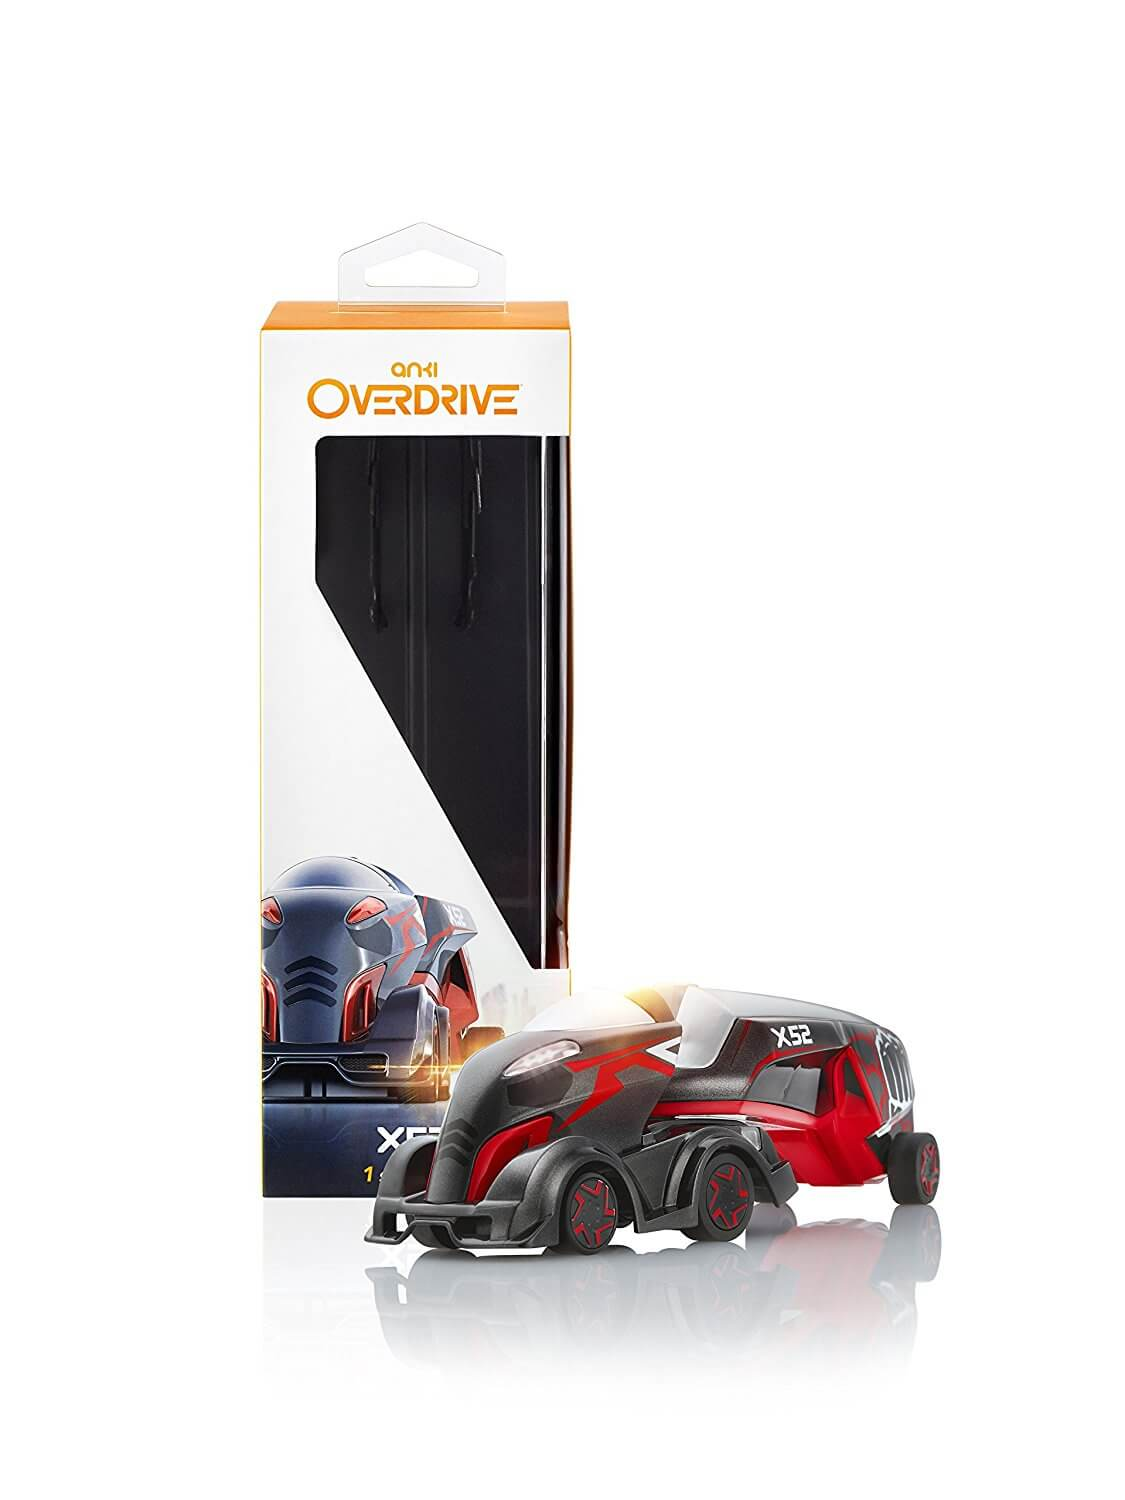 anki overdrive die rennstrecke f r die kleinen und gro en auf was maenner. Black Bedroom Furniture Sets. Home Design Ideas